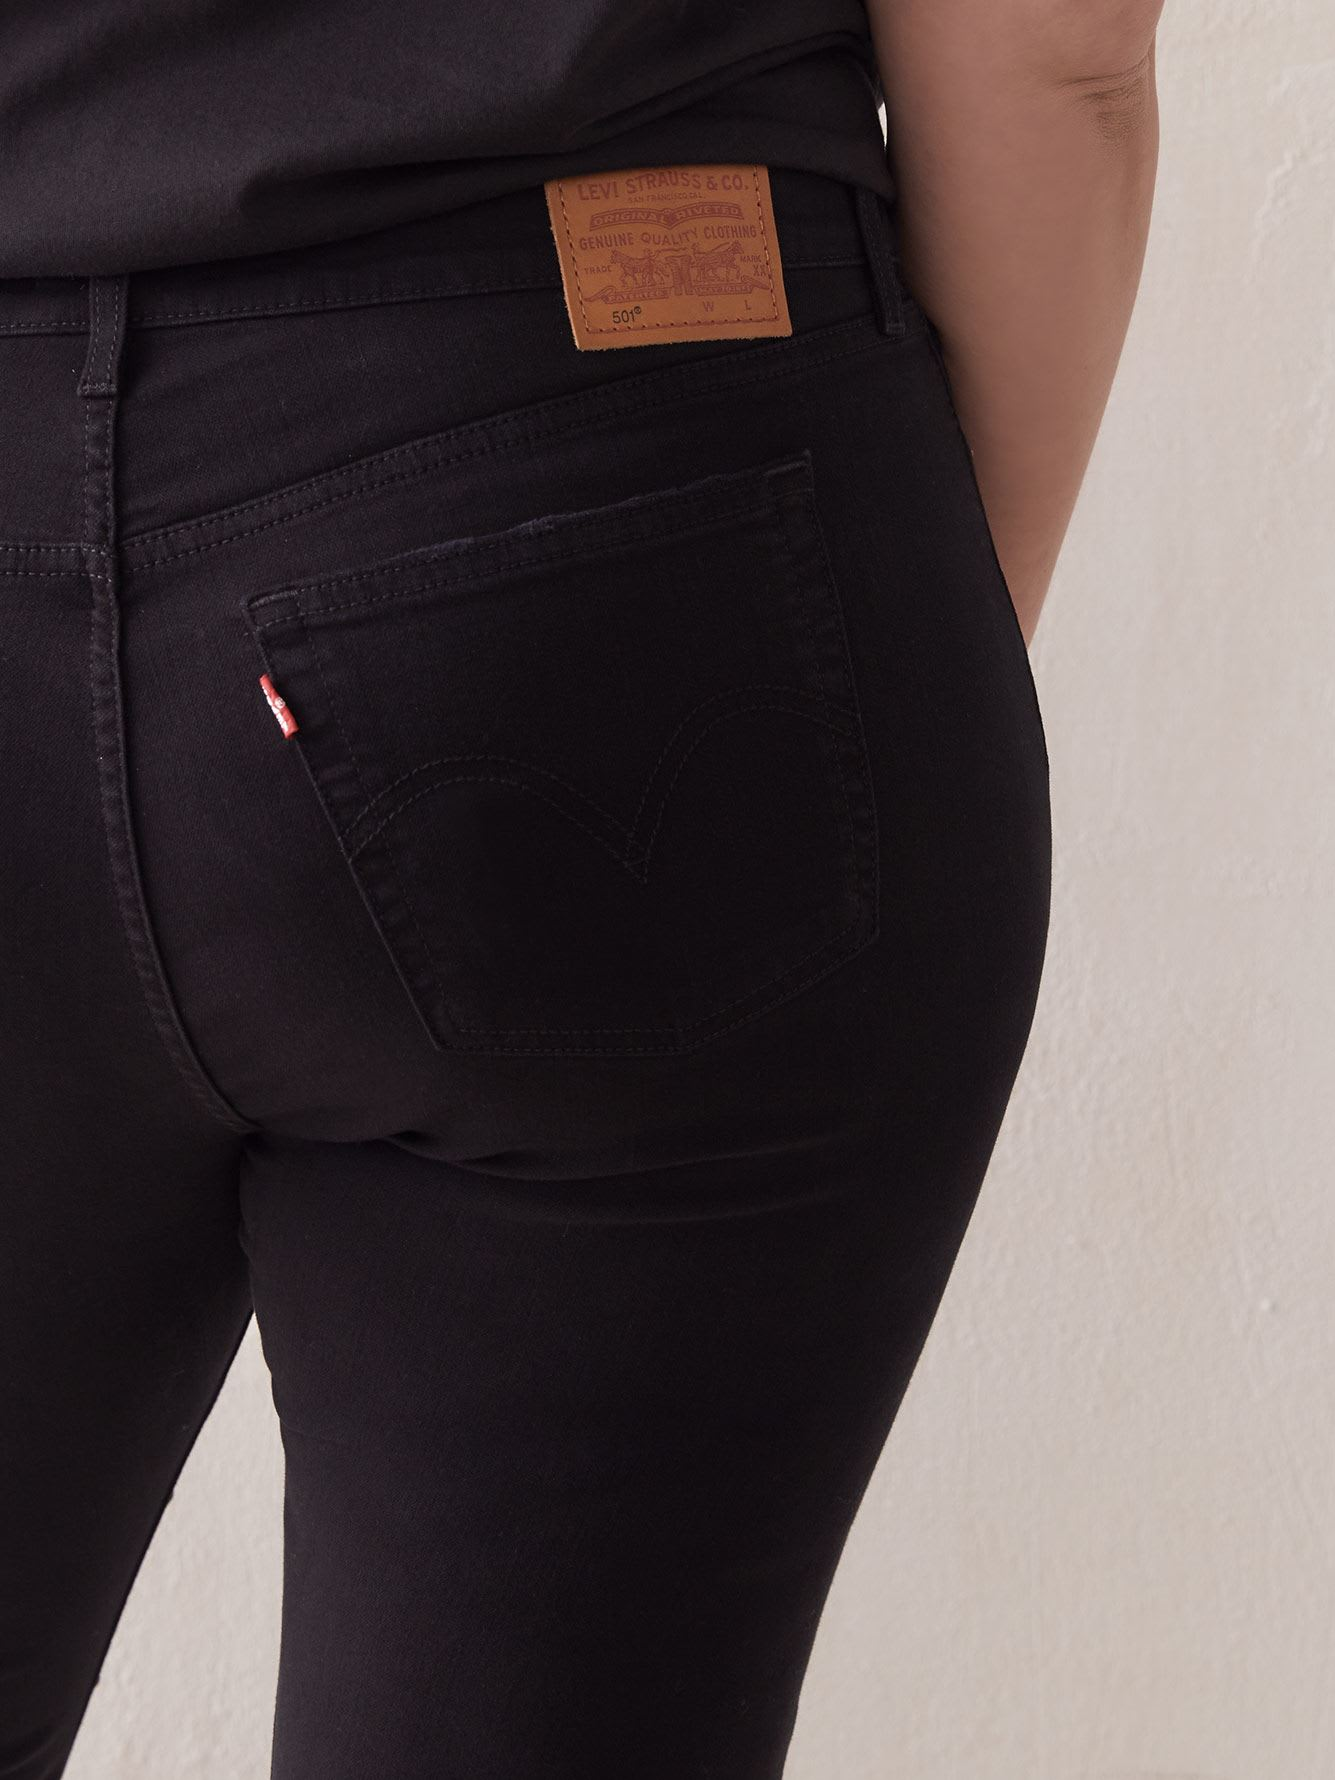 Stretchy High-Rise Wedgie Jean - Levi's Premium